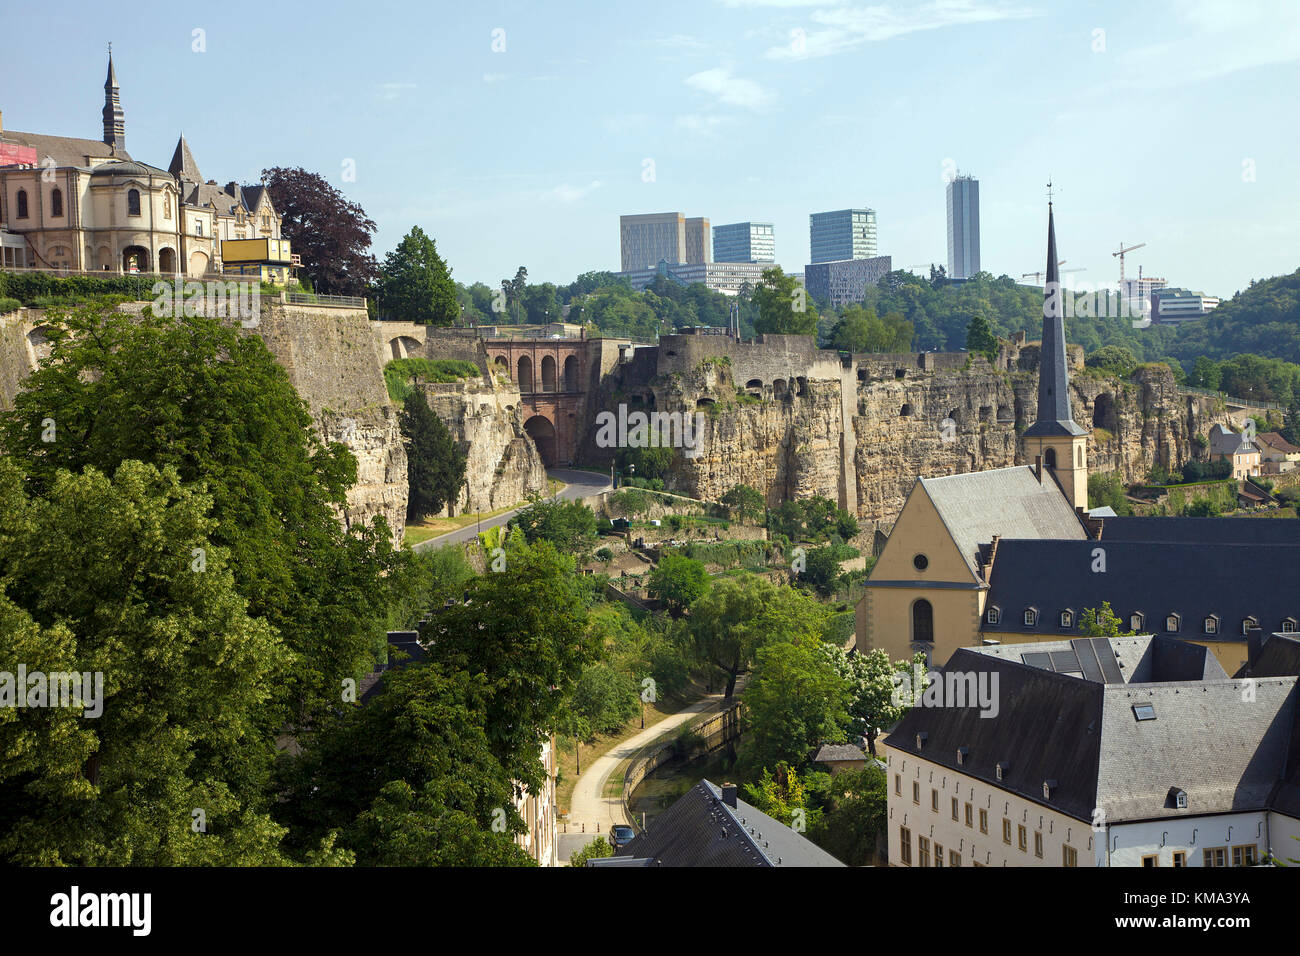 View from the old town wall to church St. Johannes, behind the europe district on Kirchberg, Luxembourg-city, Luxembourg, - Stock Image